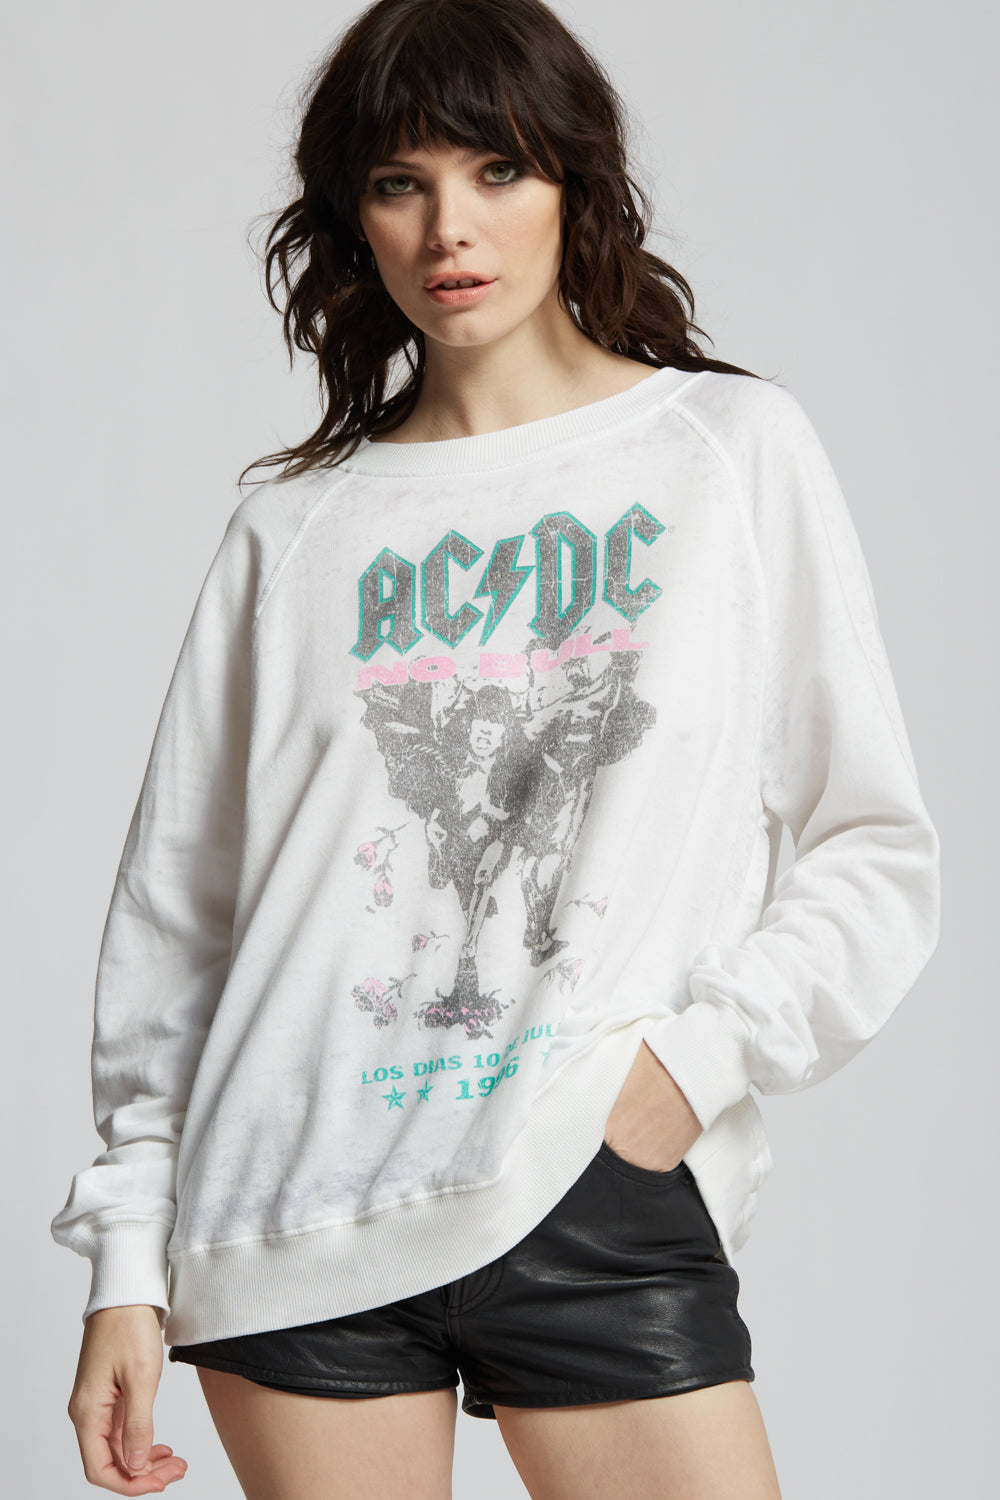 AC/DC No Bull 1996 Tour Sweatshirt